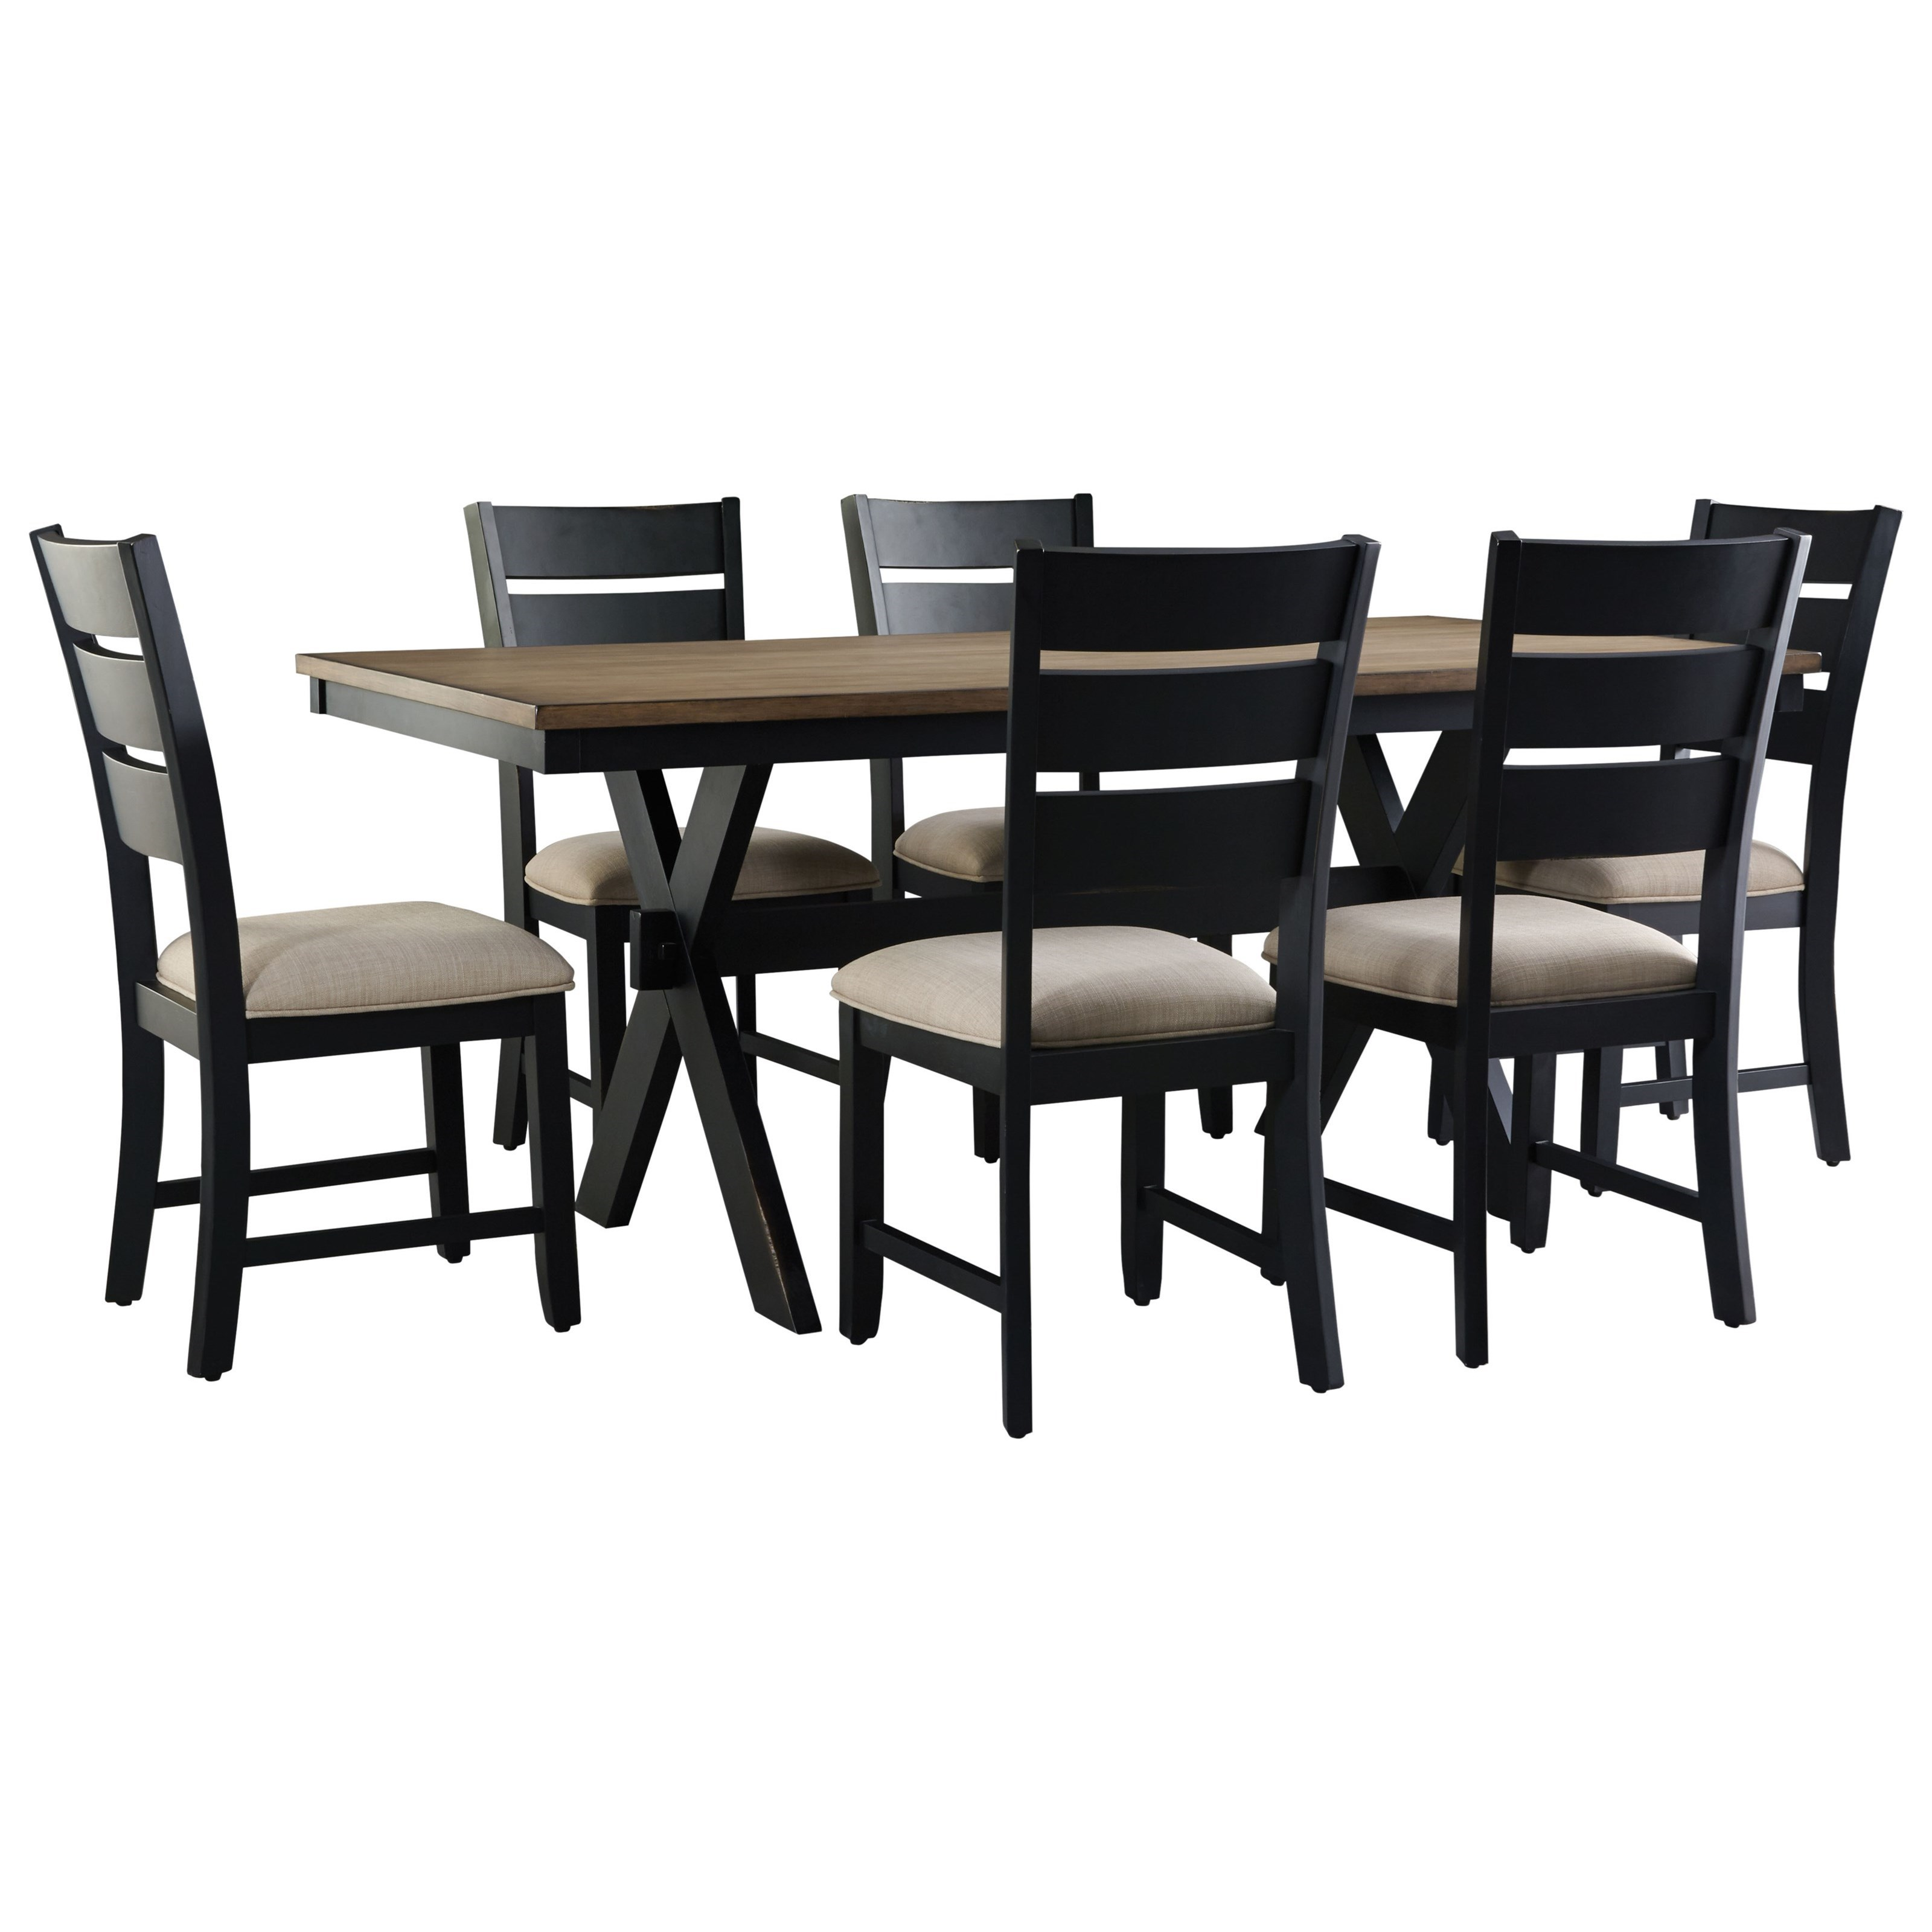 Standard Furniture Braydon Dining Table and Chair Set - Item Number: 12802